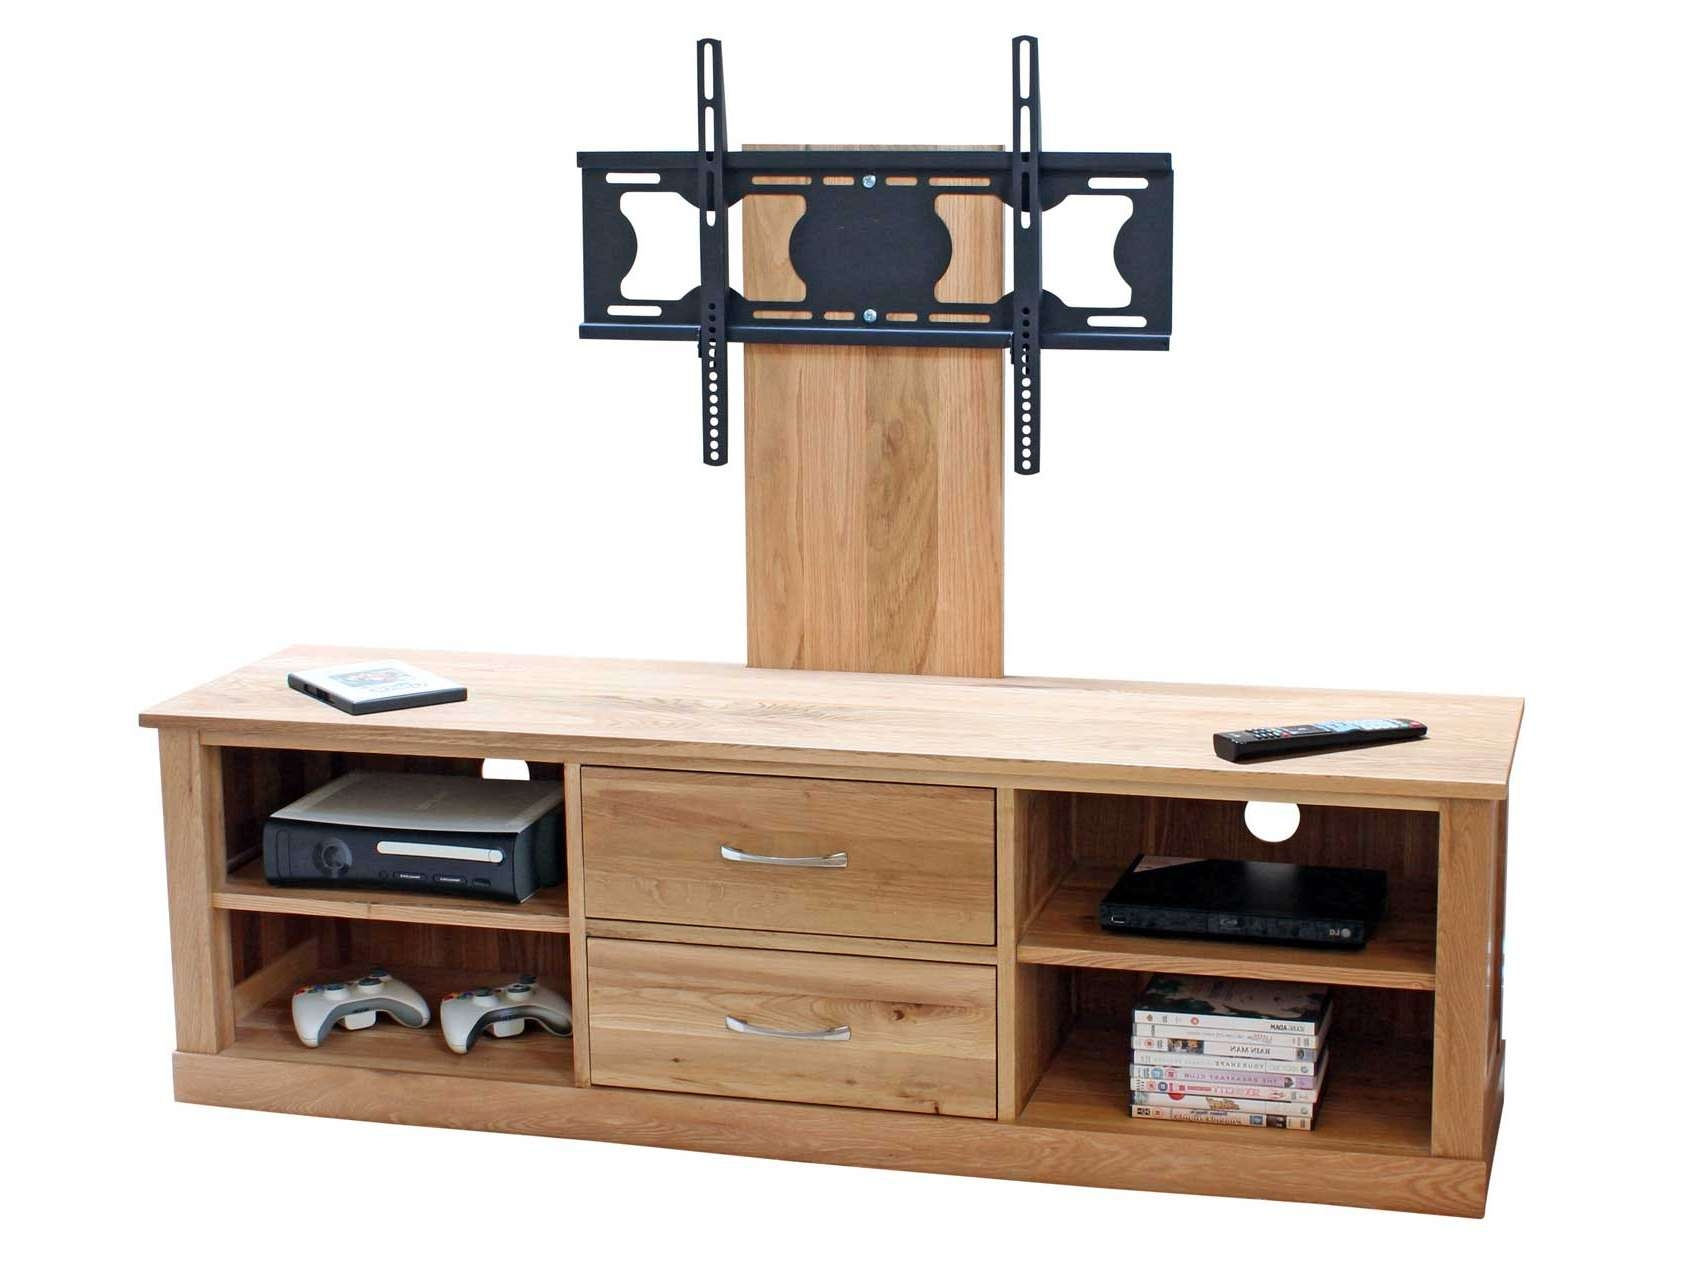 Home Decor: Cool Flat Screen Tv Stands With Mounts Inspiration As With Regard To Tv Stands With Mount (View 9 of 15)